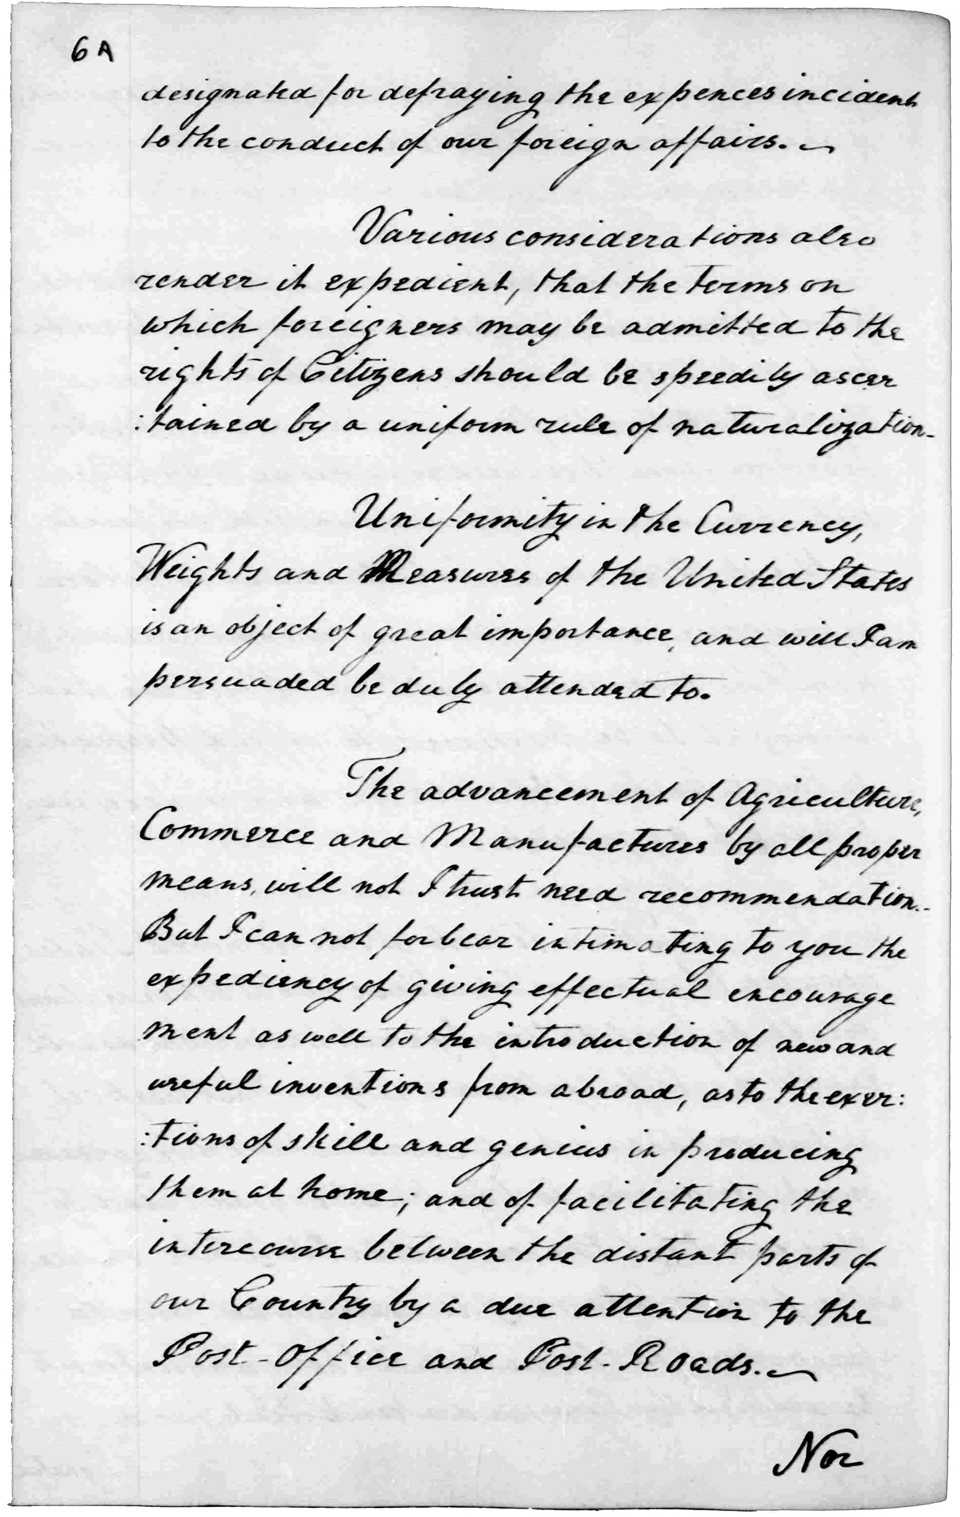 First Annual Address to Congress, January 8, 1790 · George